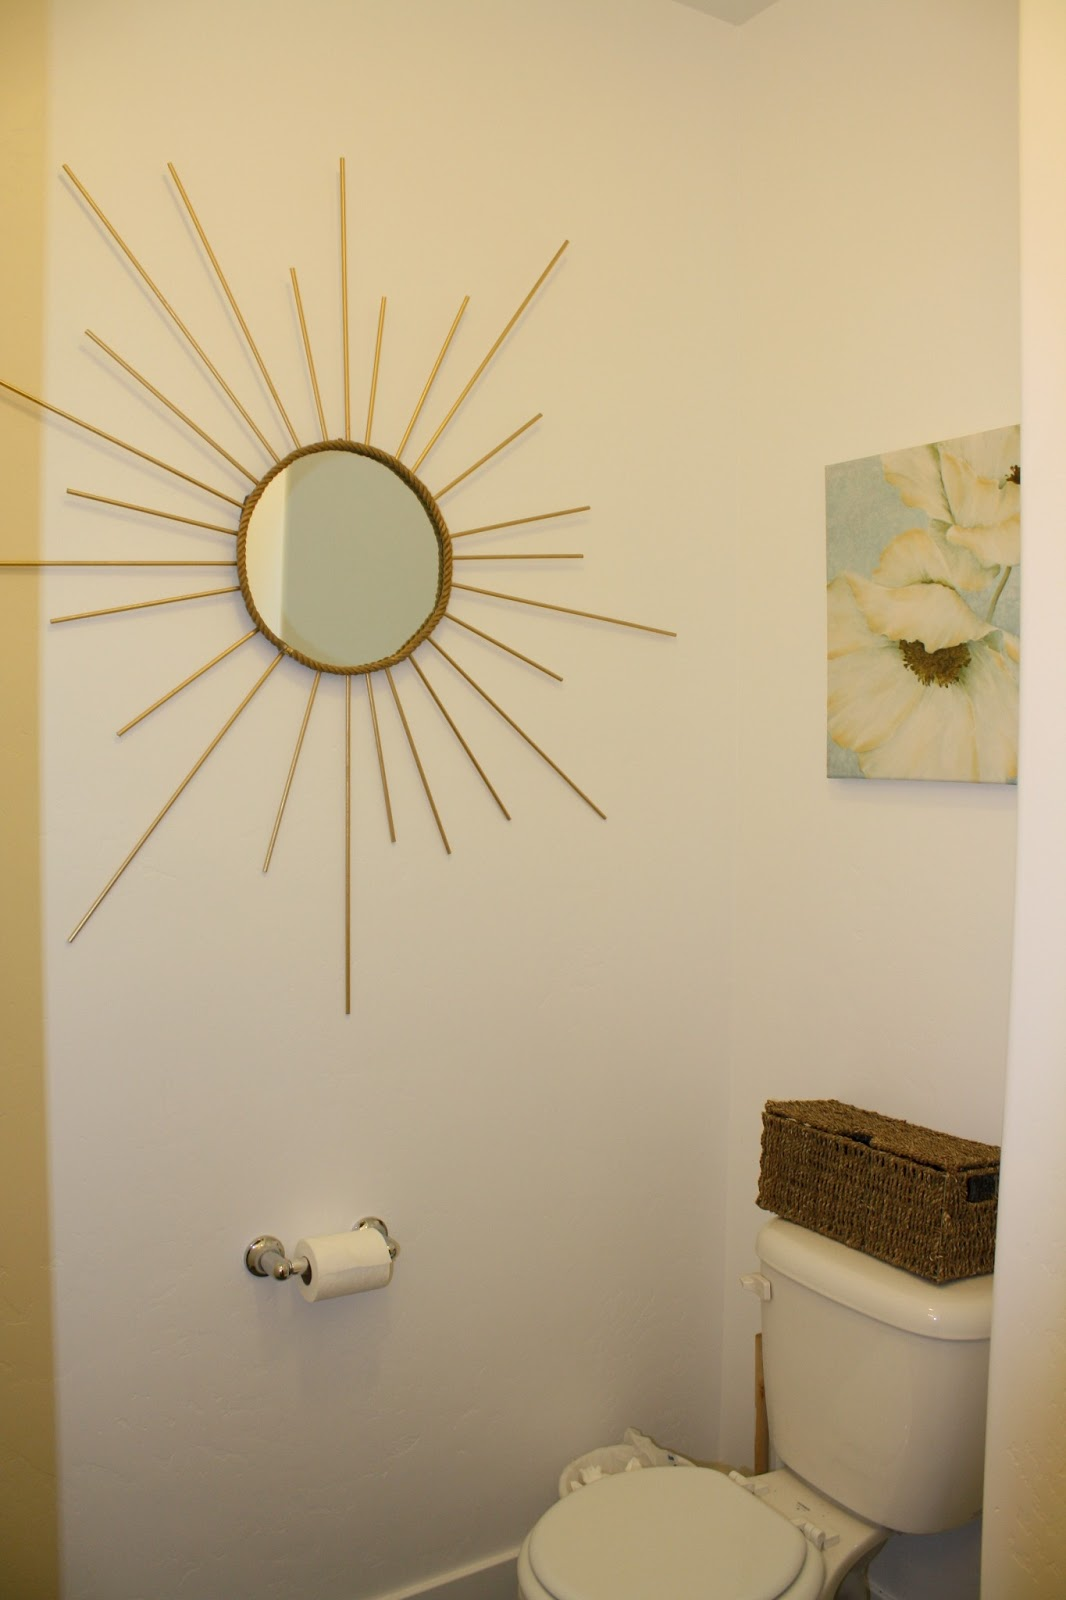 Nifty Thrifty Momma: DIY Sunburst Mirror